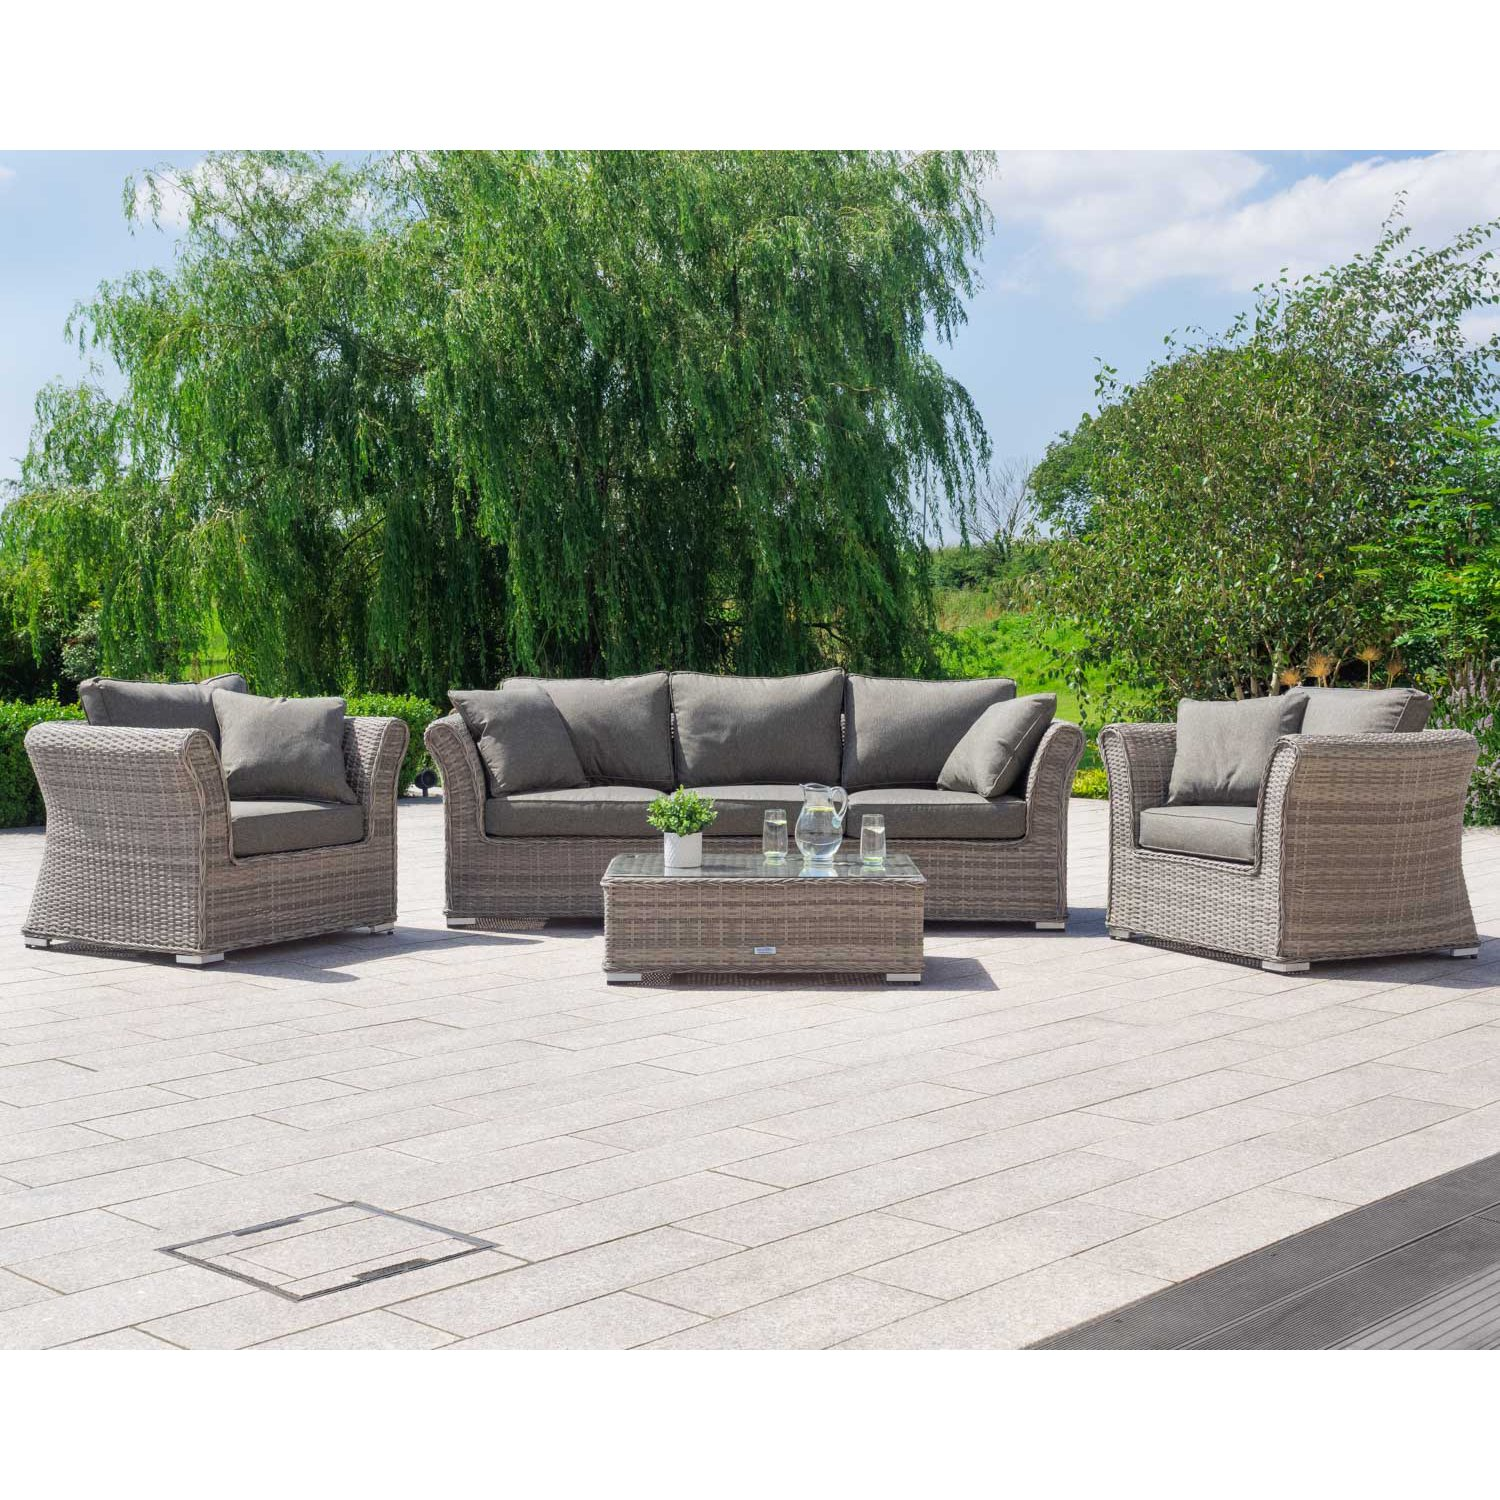 image-Lisbon 3 Seat Rattan Garden Sofa Set in Grey